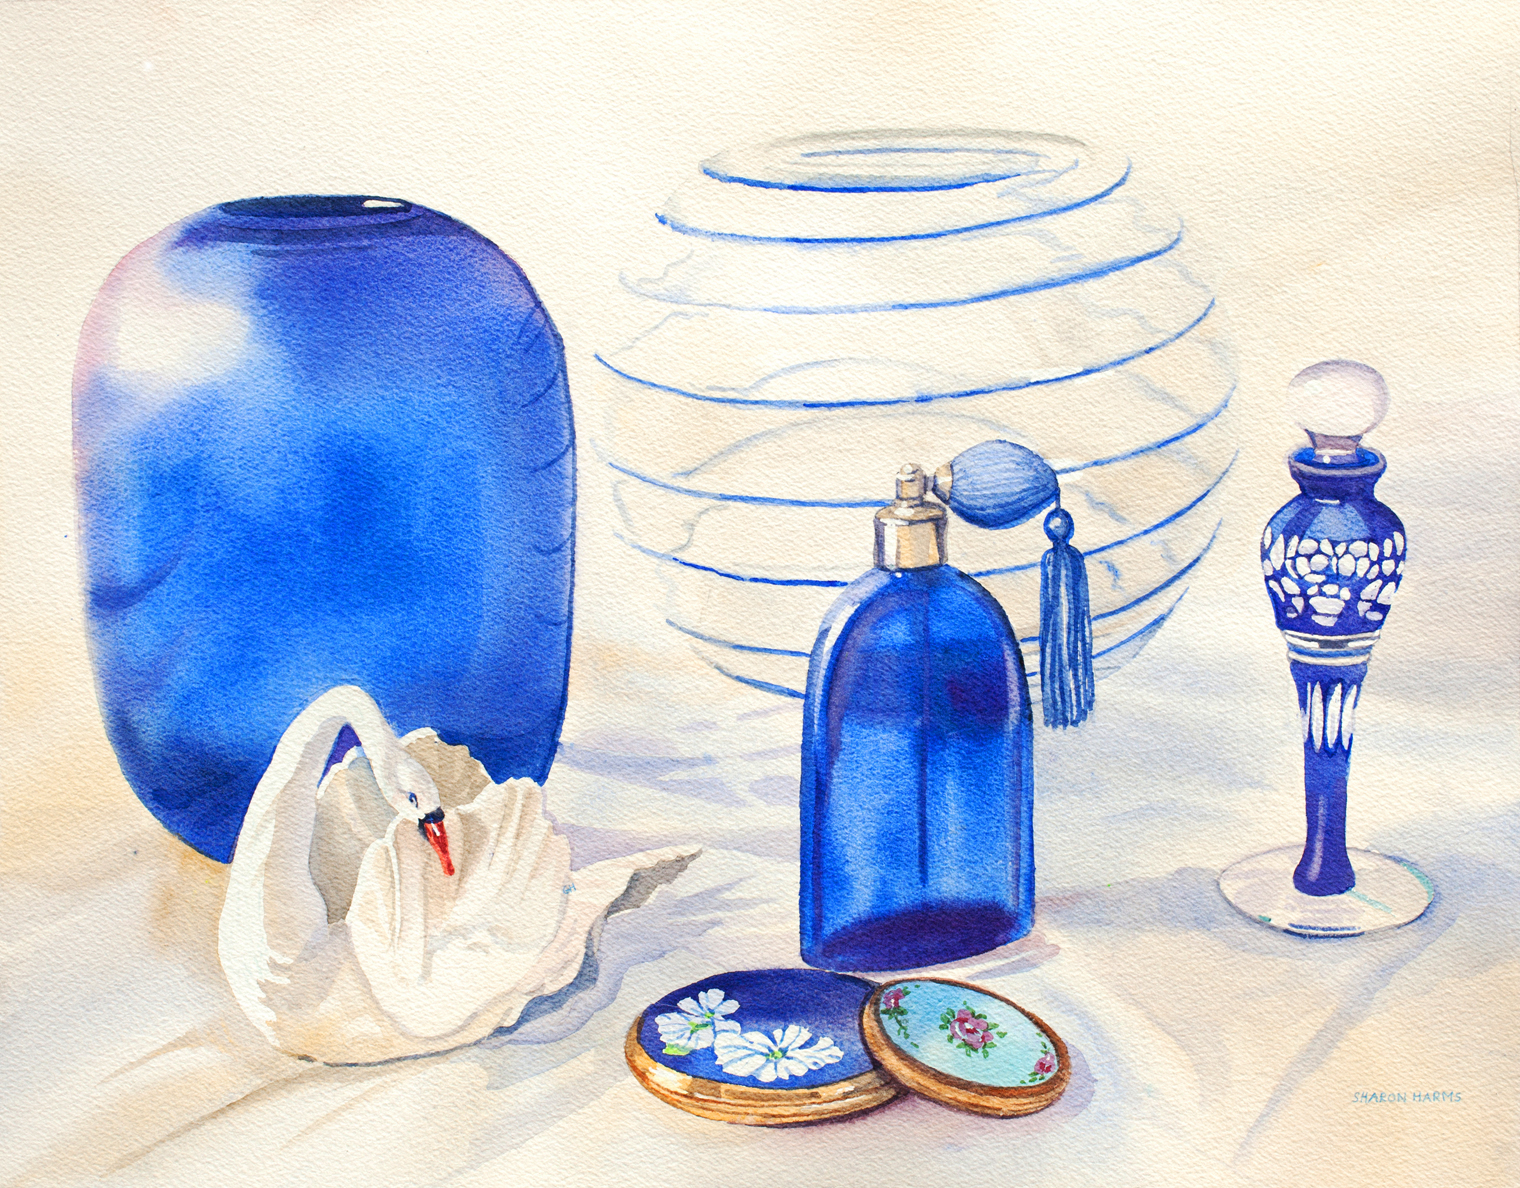 Still Life with Blenko Glass